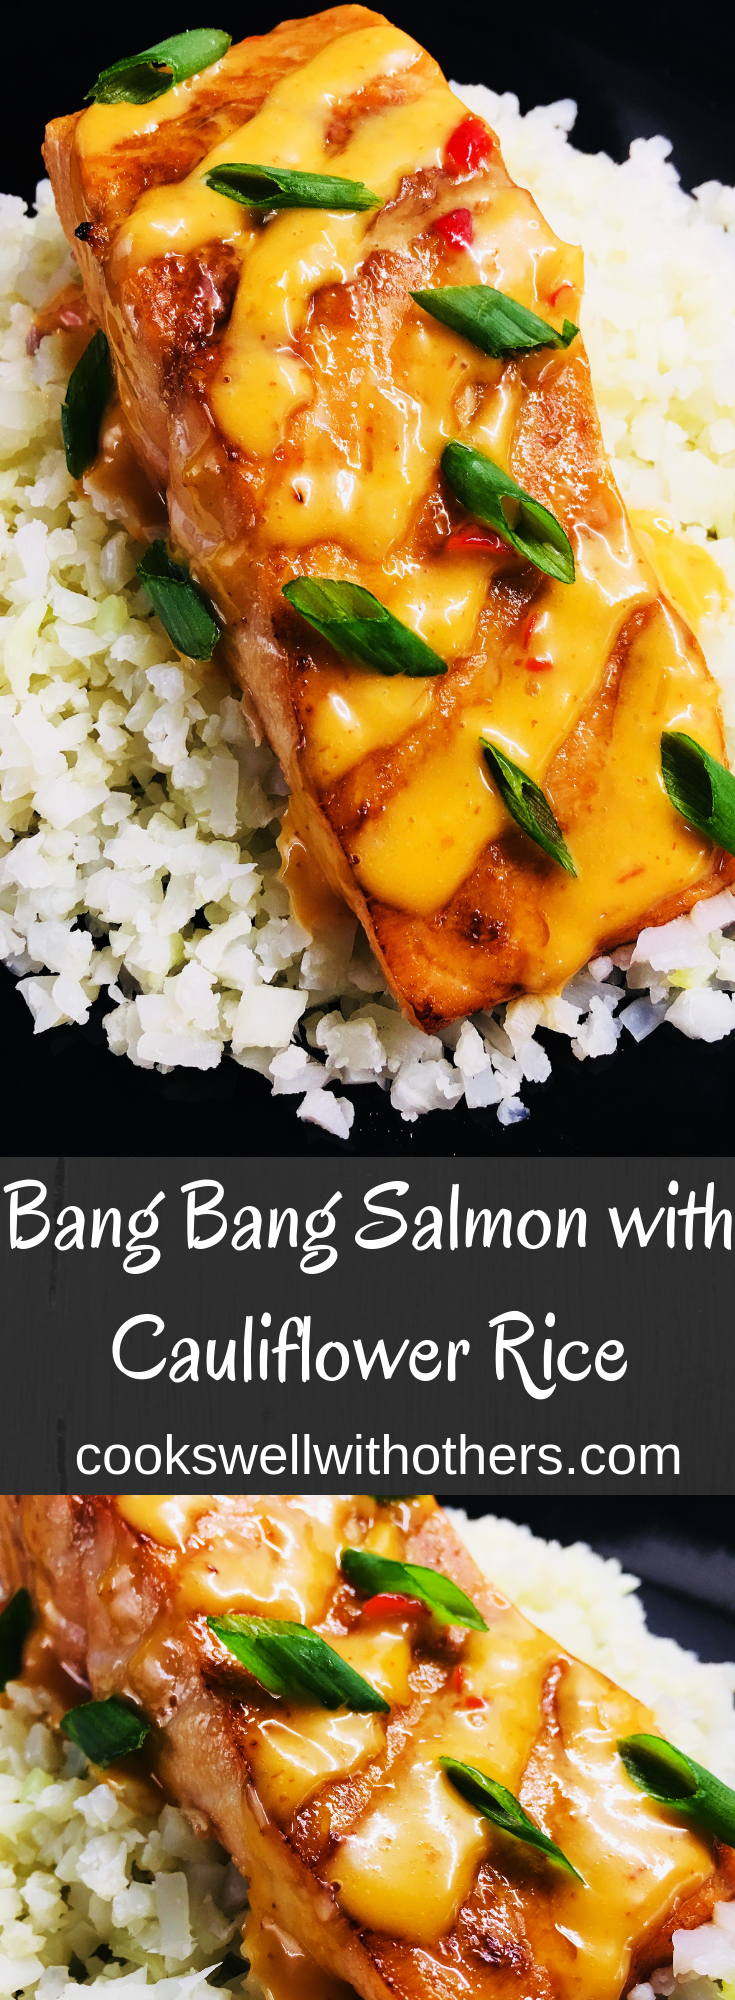 salmon on top of cauliflower with special bang bang sauce is an easy way to make a quick healthy dinner. #healthy #dinner #5ingredients